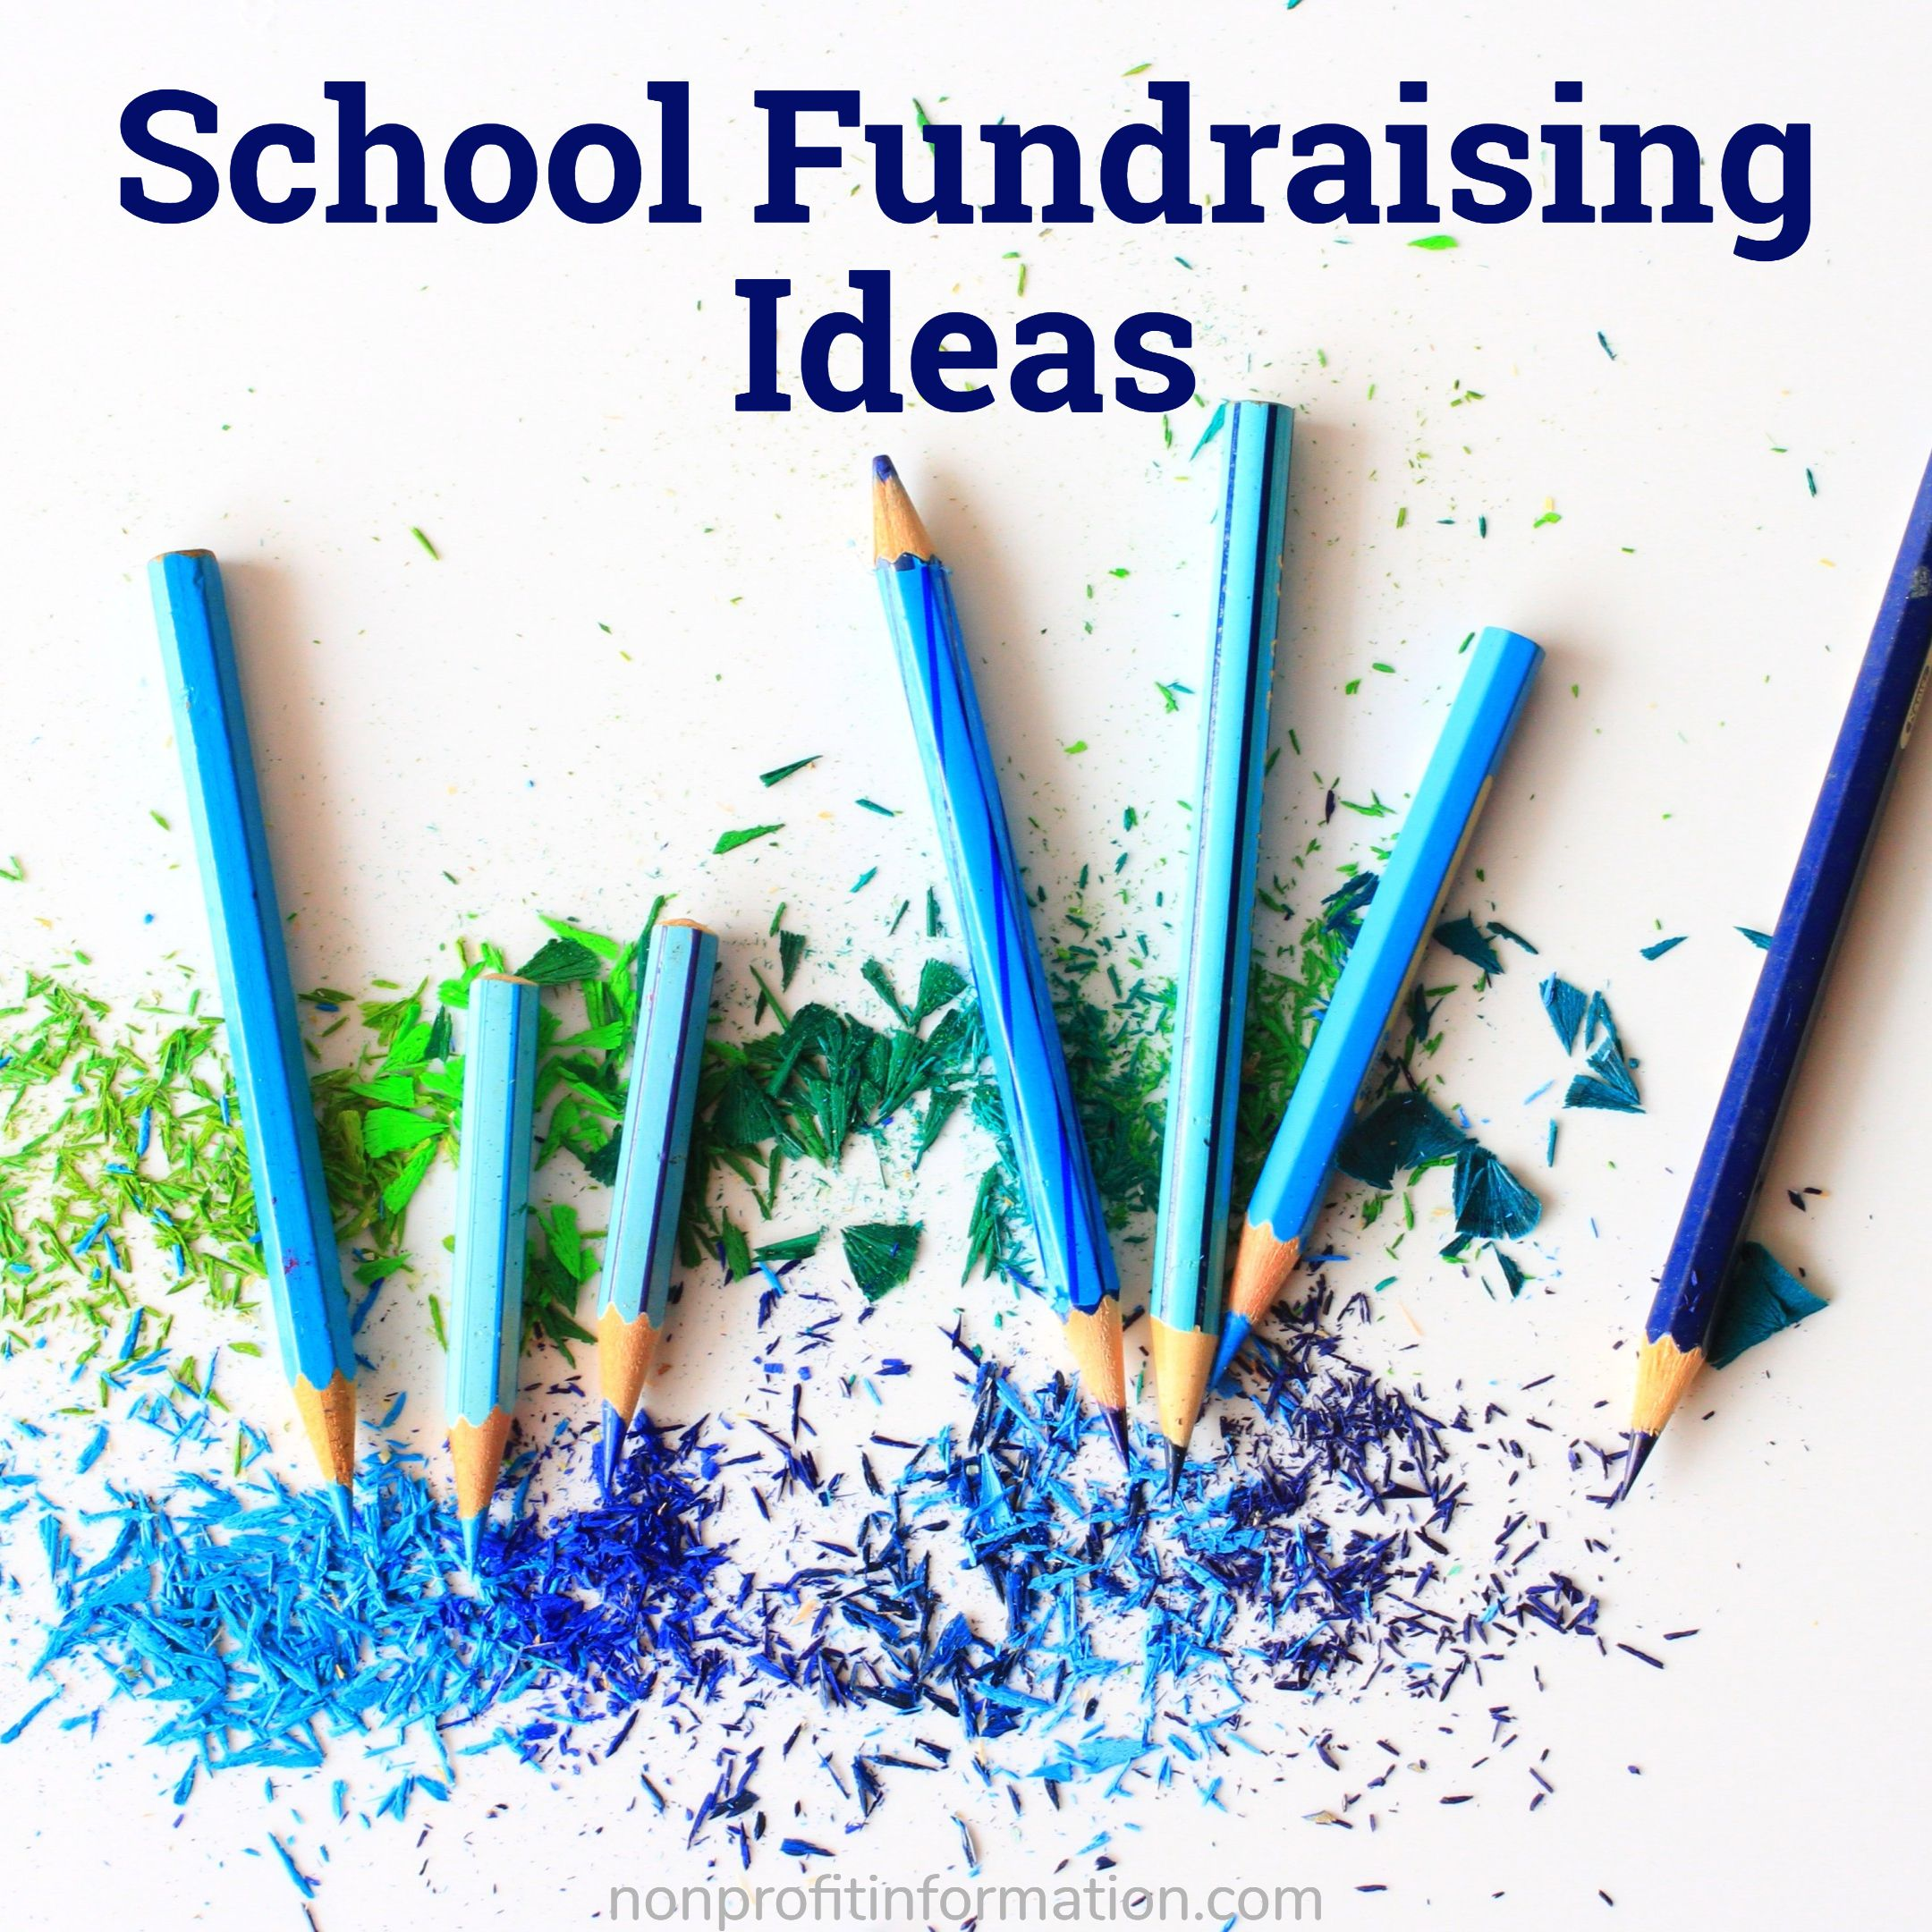 School Fundraising Ideas - Student Fundraising Ideas for Schools